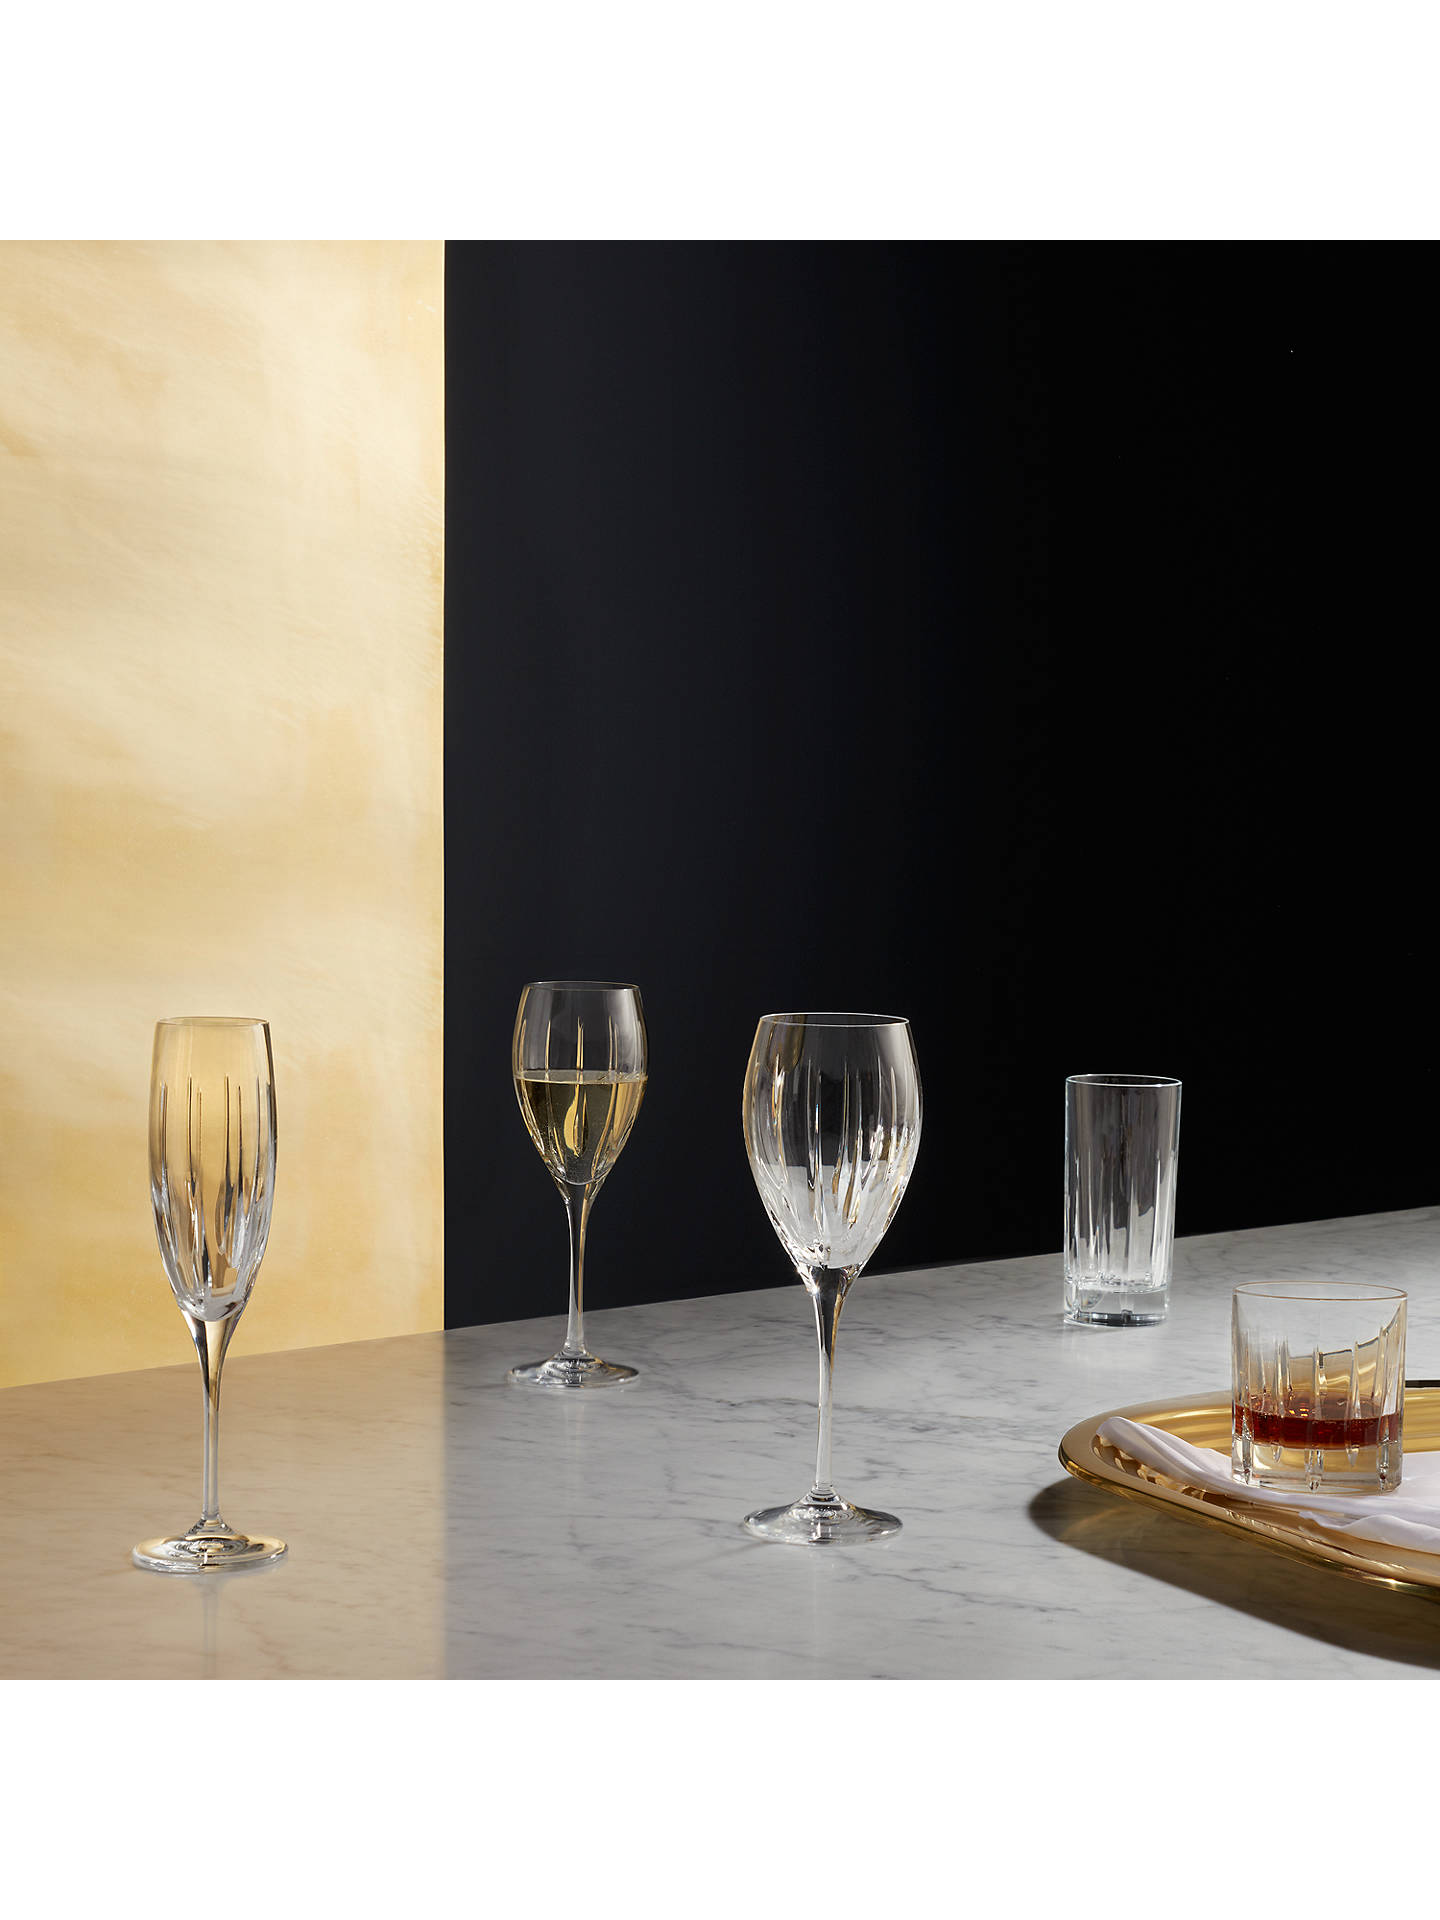 Buy John Lewis & Partners Glacier Wine Glasses, Clear, 301ml, Set of 2 Online at johnlewis.com